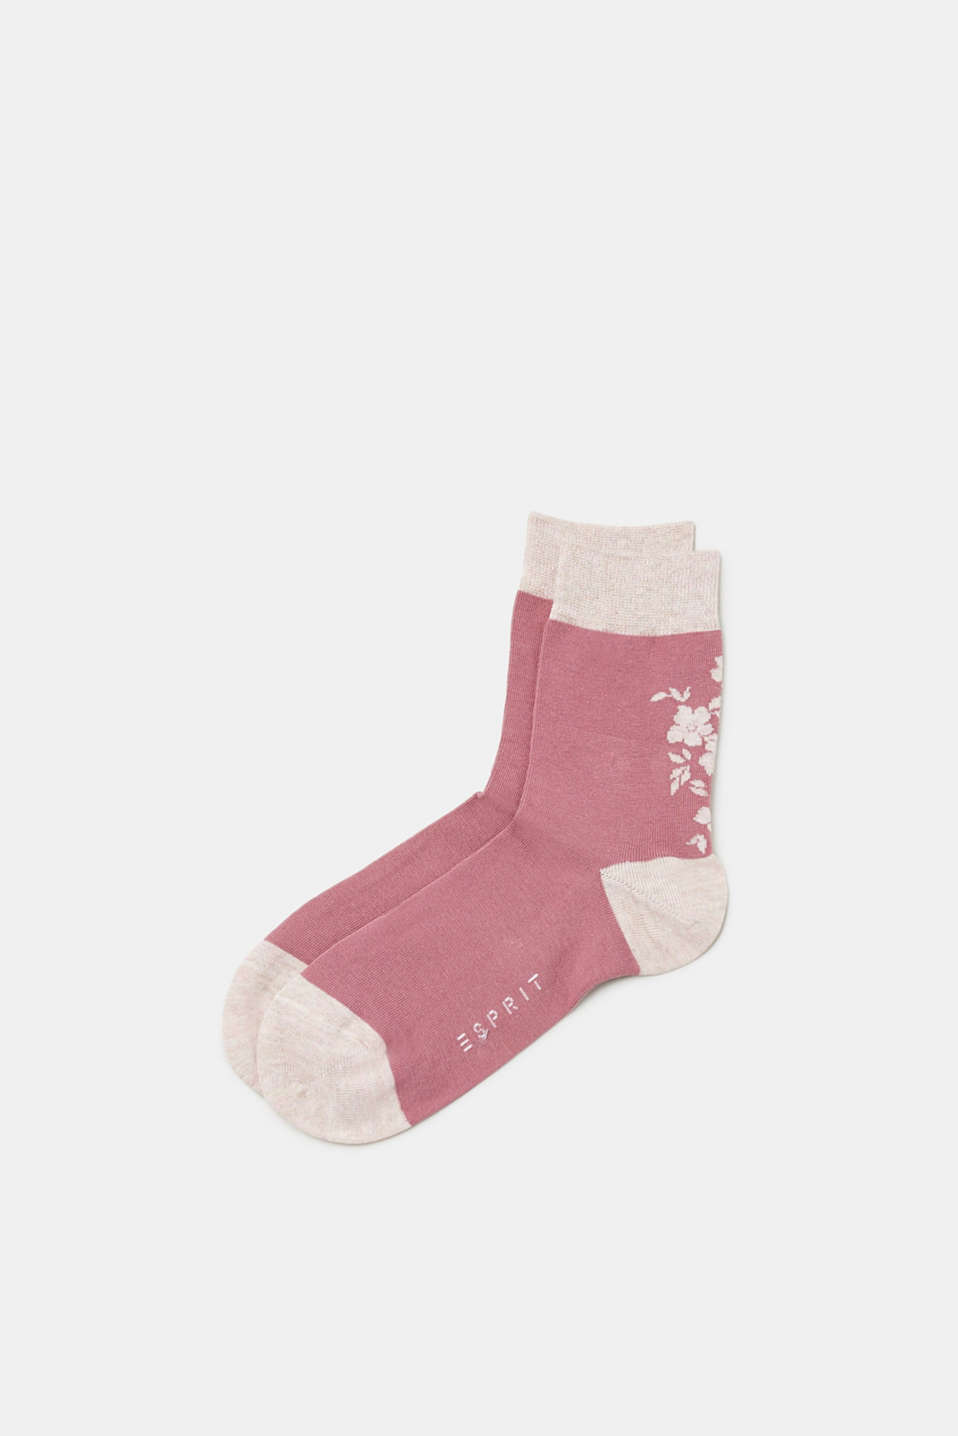 Esprit - Socks with a bright melange effect